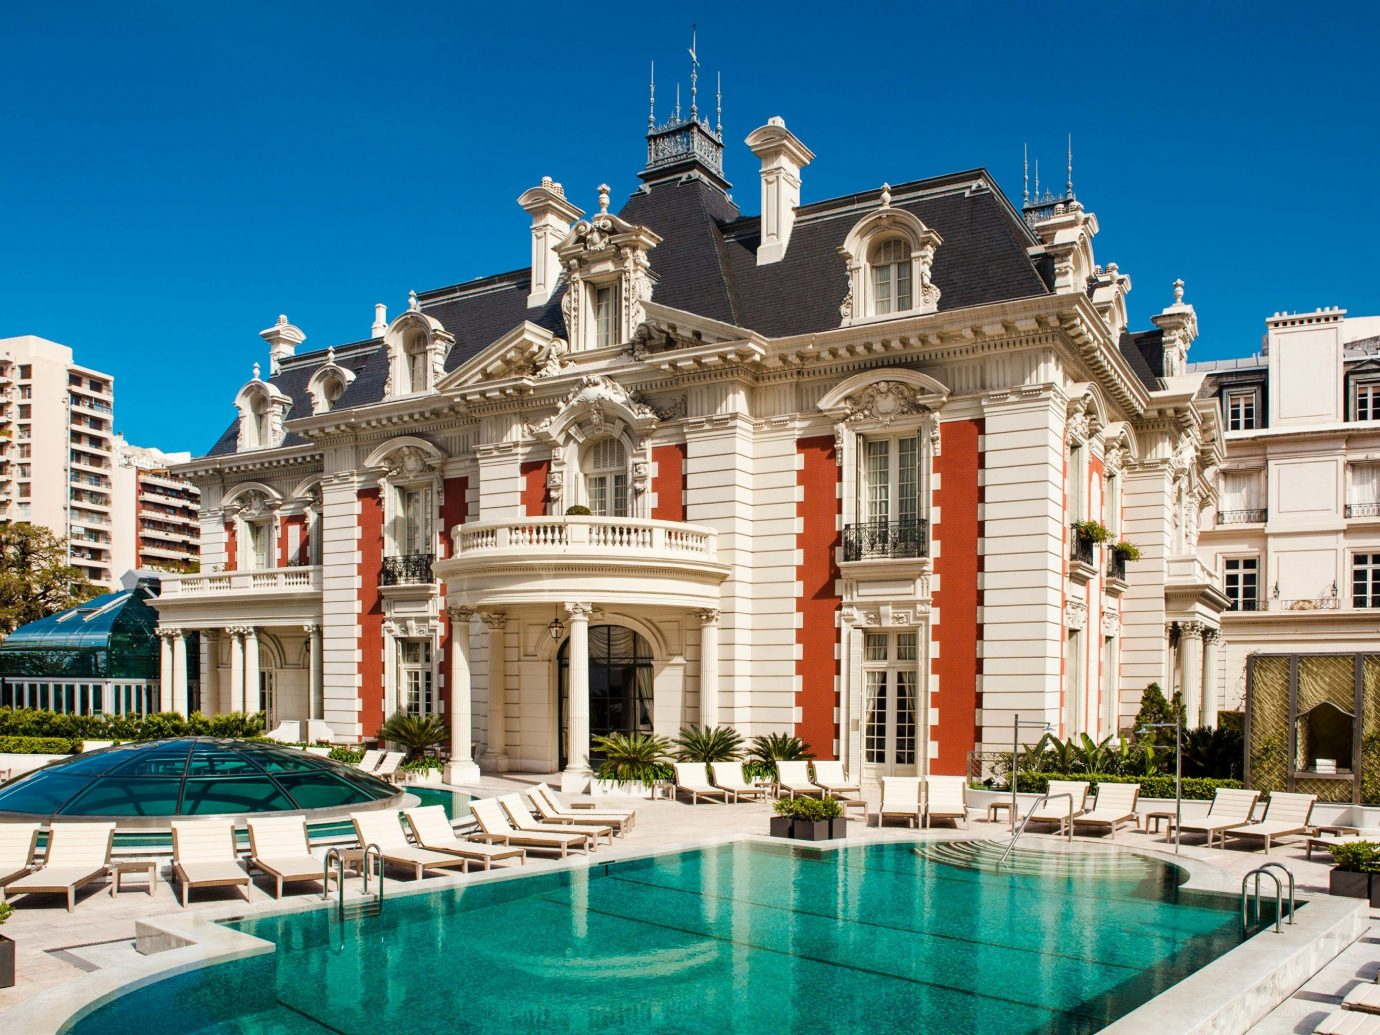 Boutique Hotels Luxury Travel building sky property outdoor mansion estate real estate palace classical architecture tourism tourist attraction Resort Villa facade plaza resort town swimming pool hotel leisure historic house stone colonnade